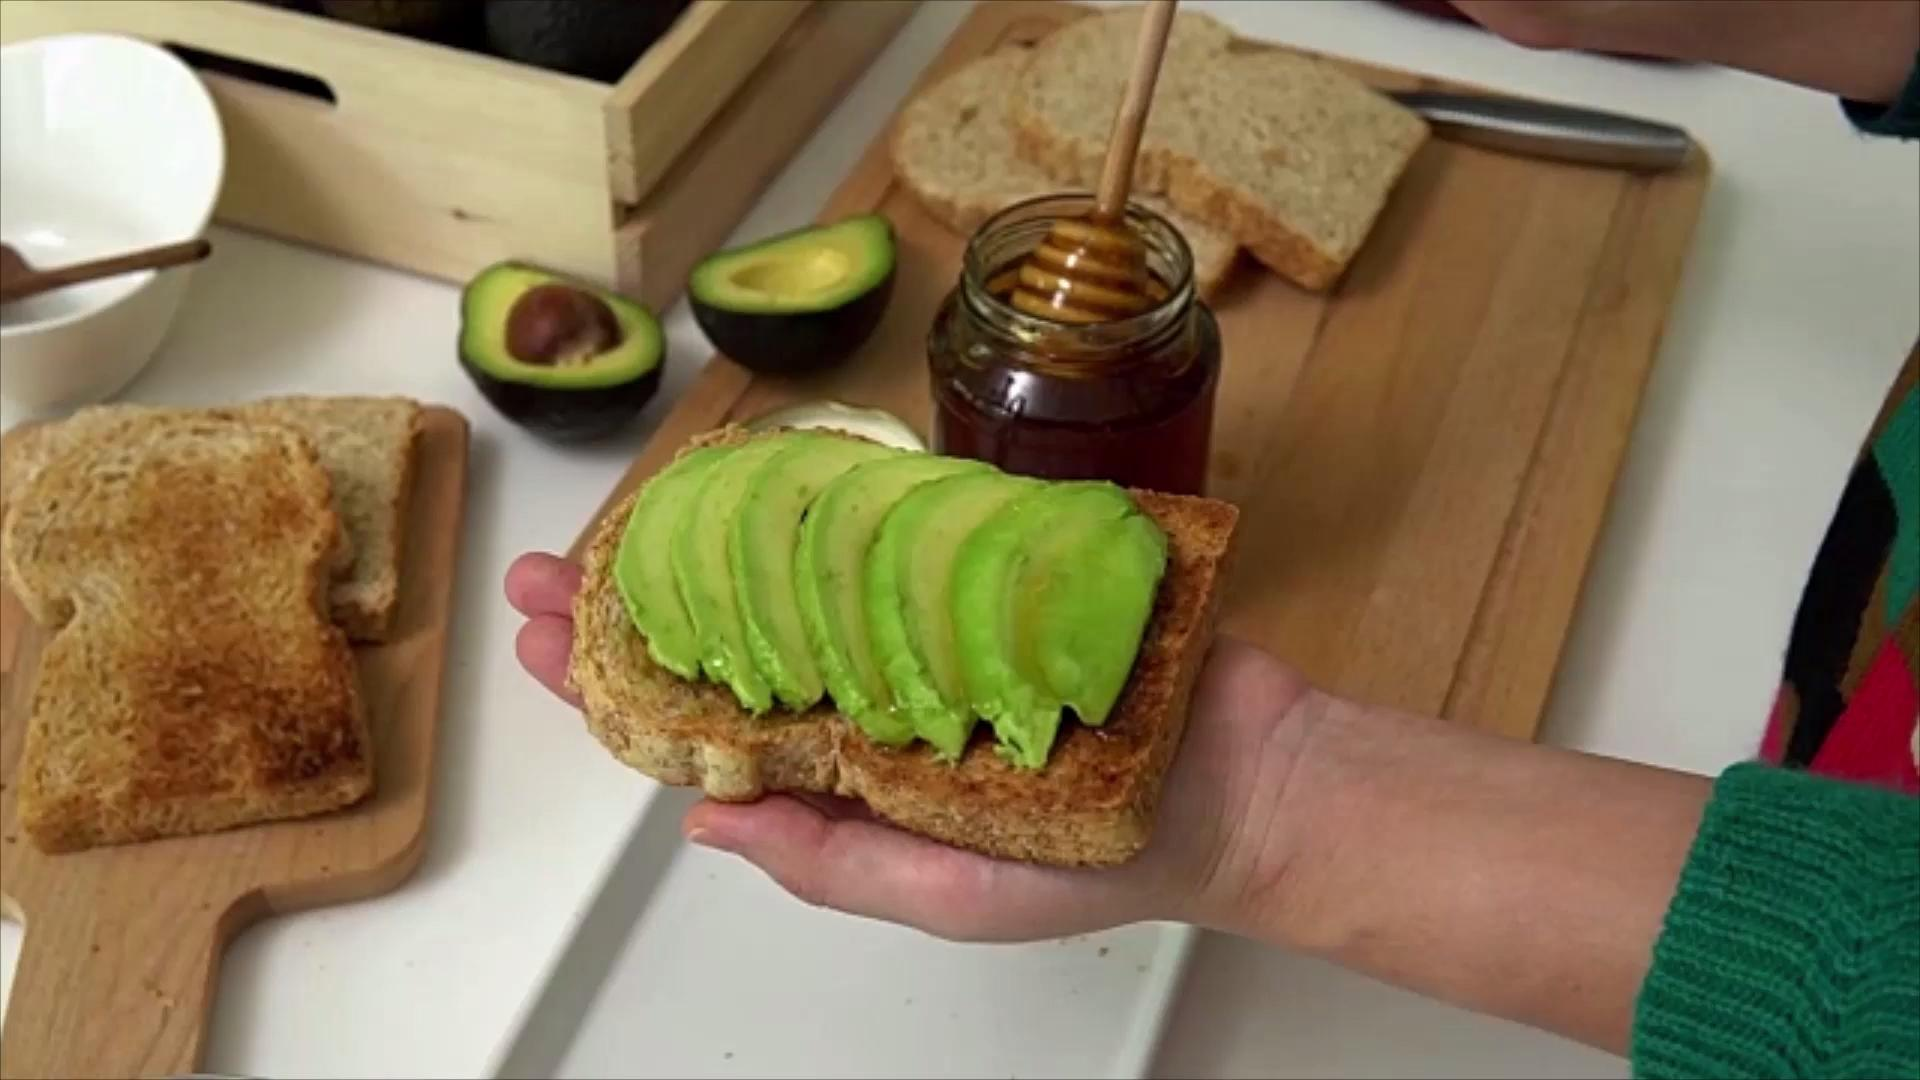 Here's Why You Shouldn't Use a Metal Knife to Cut an Avocado